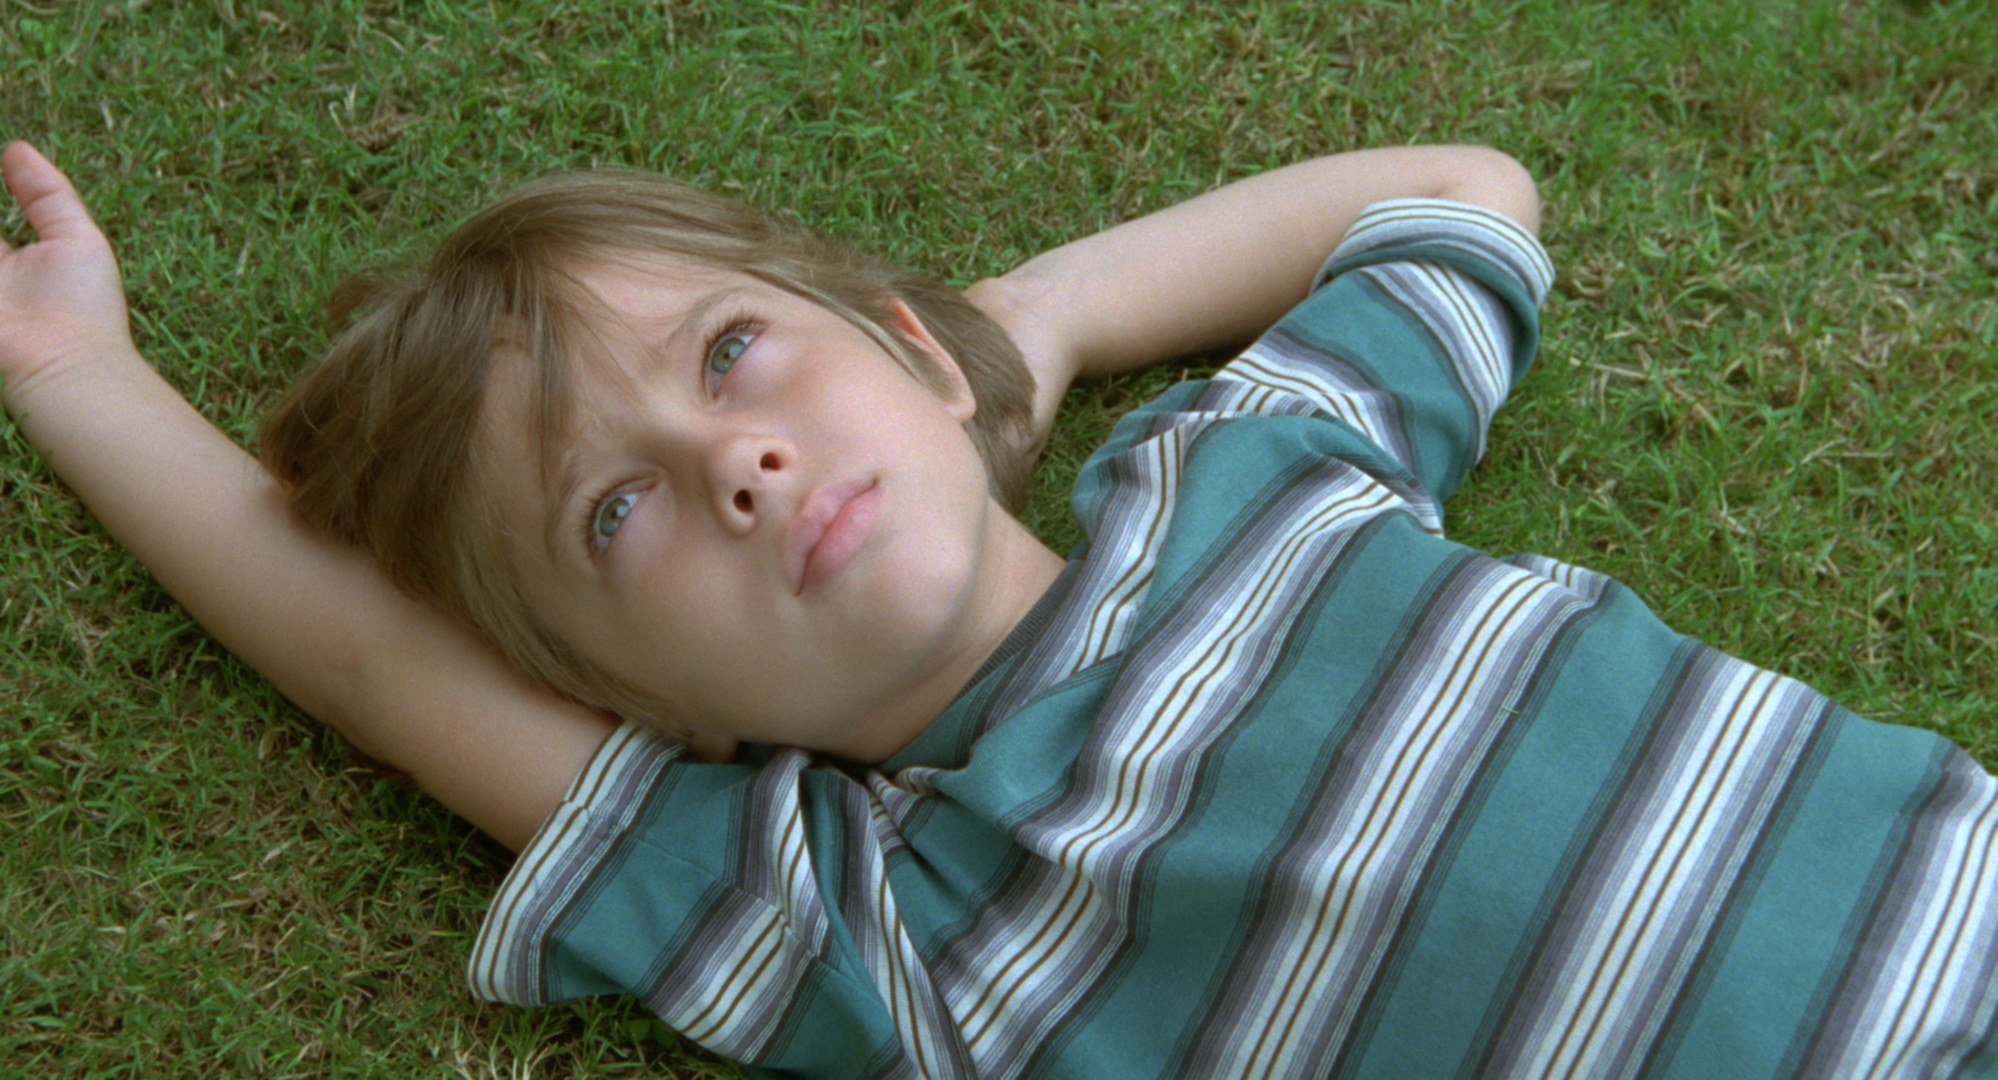 The boy from Boyhood looking up at the sky.